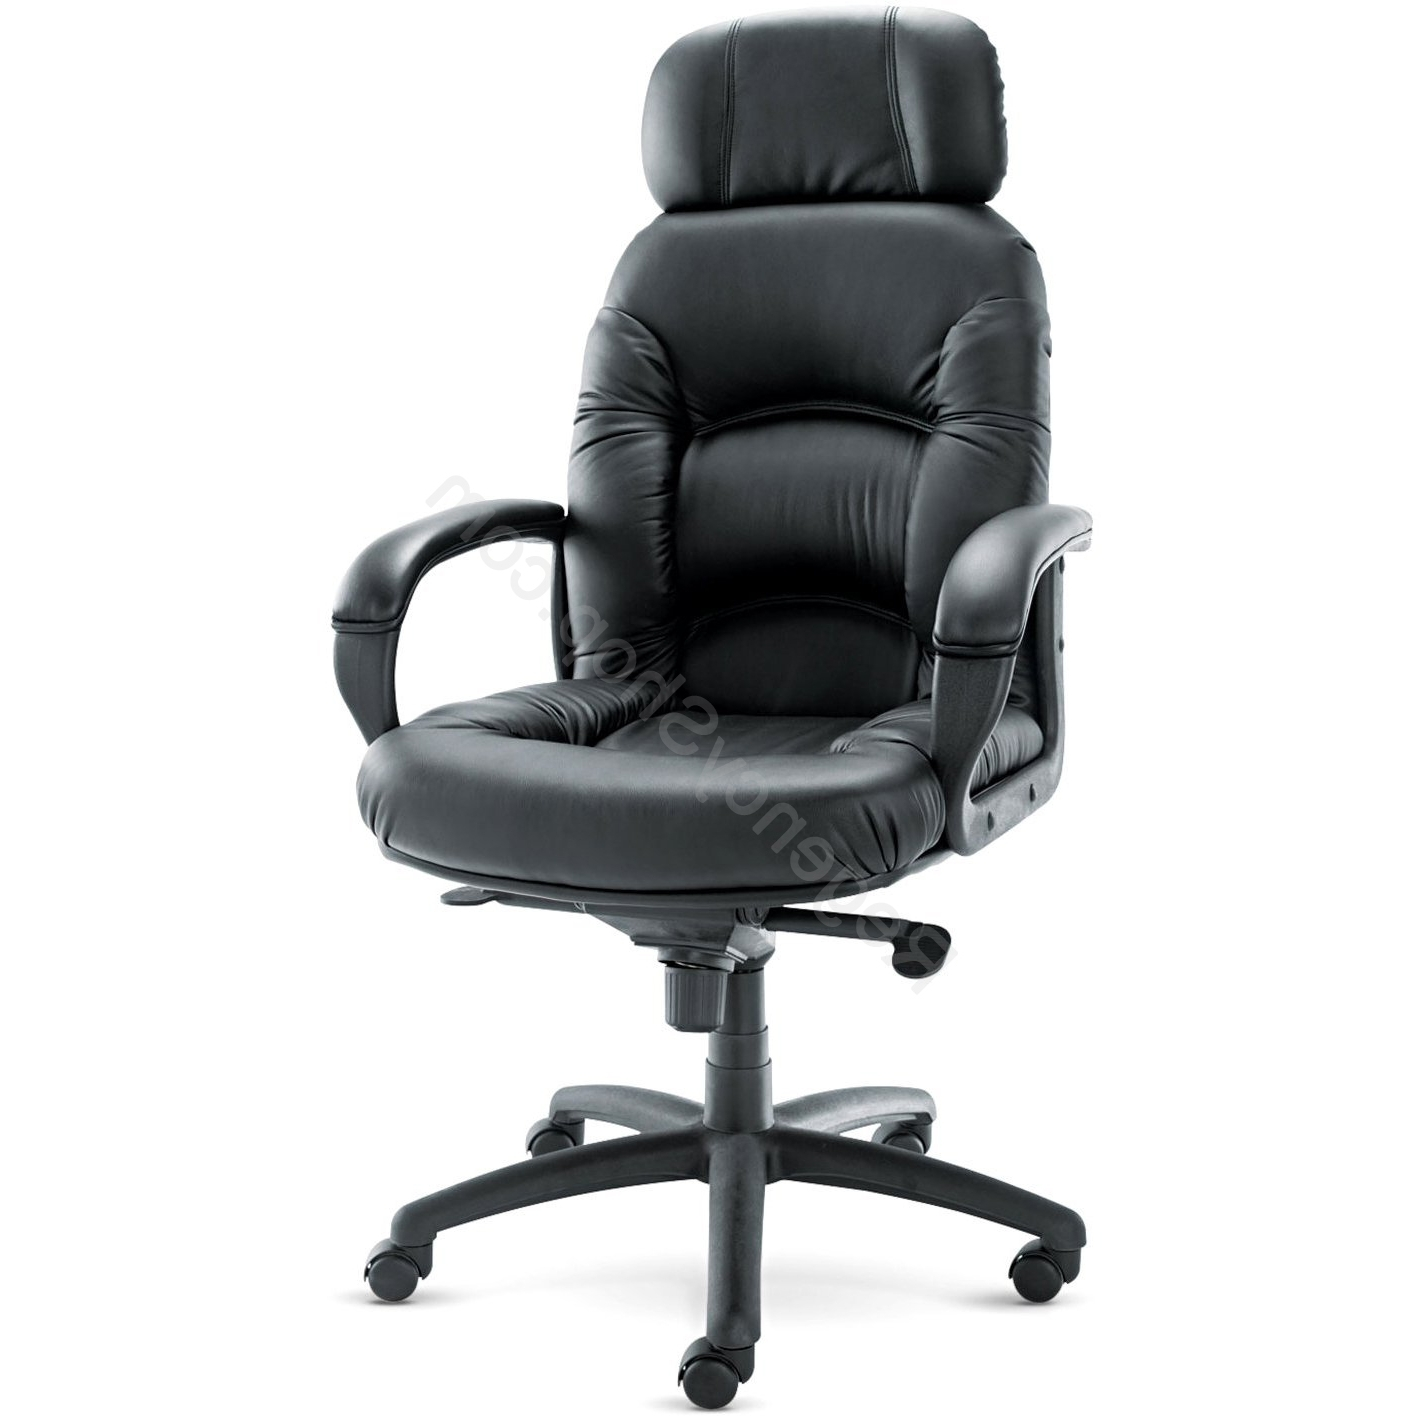 2019 Quality Executive Office Chairs Within Alera Nico High Back Swivel/tilt Chair *high Quality* Office Chair (View 2 of 20)